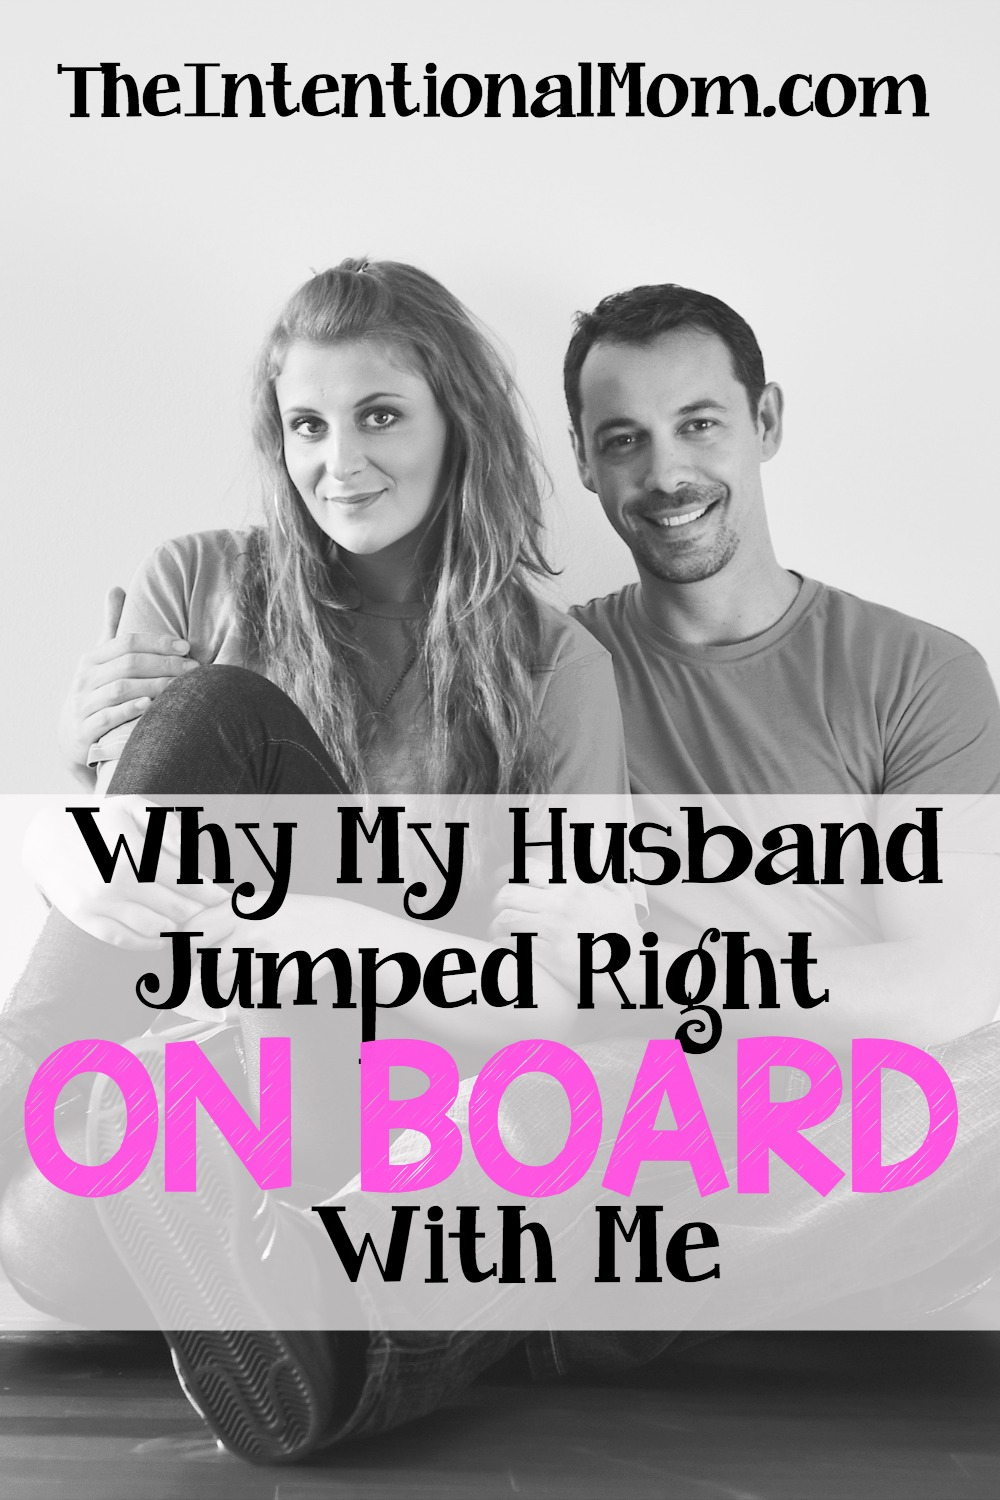 Everything that my husband and I have left in common